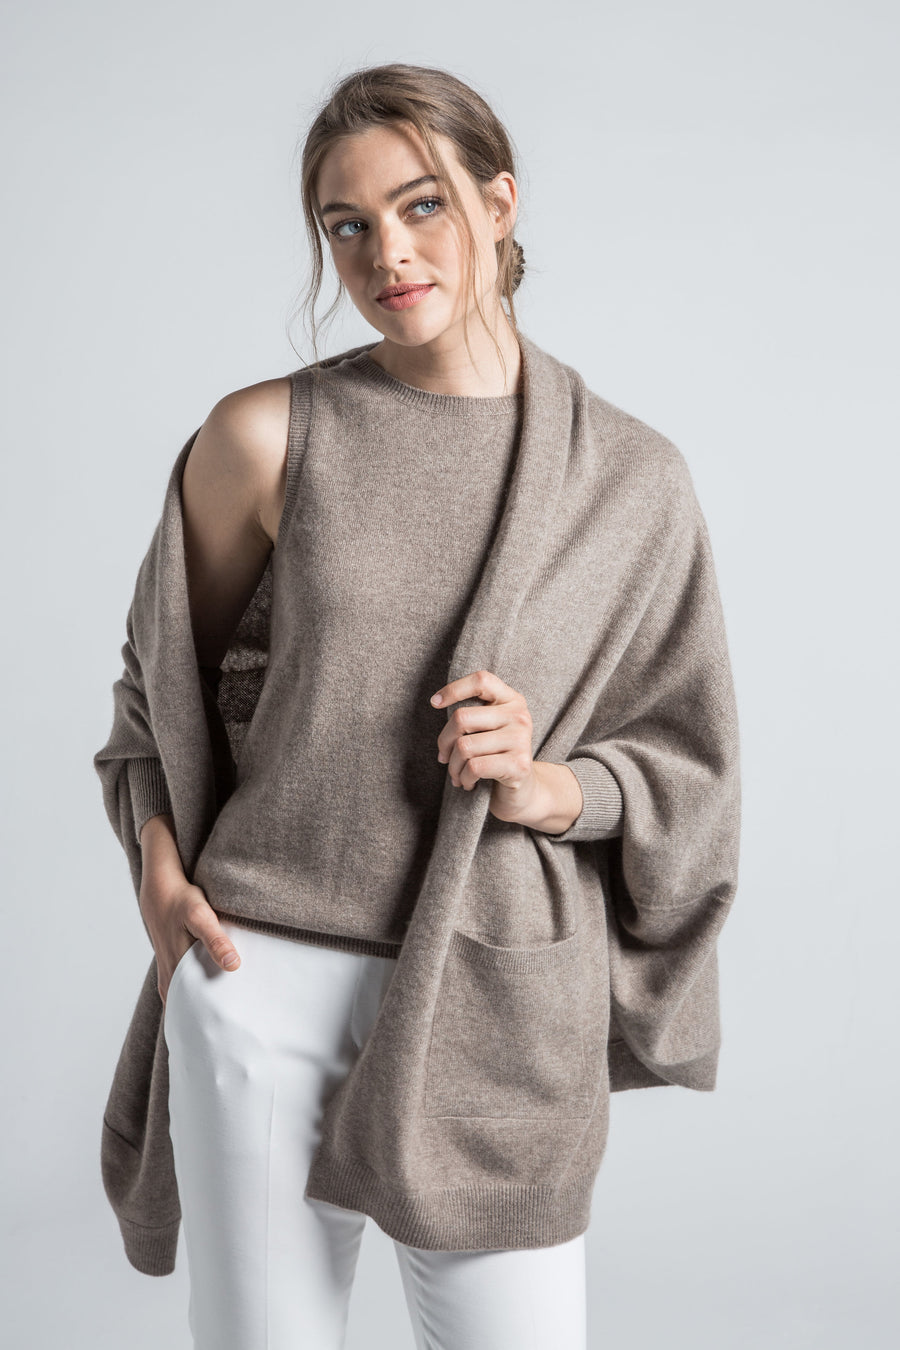 luxury sustainable organic brown cashmere open front multi wear cardigan wrap with 2 front pocket